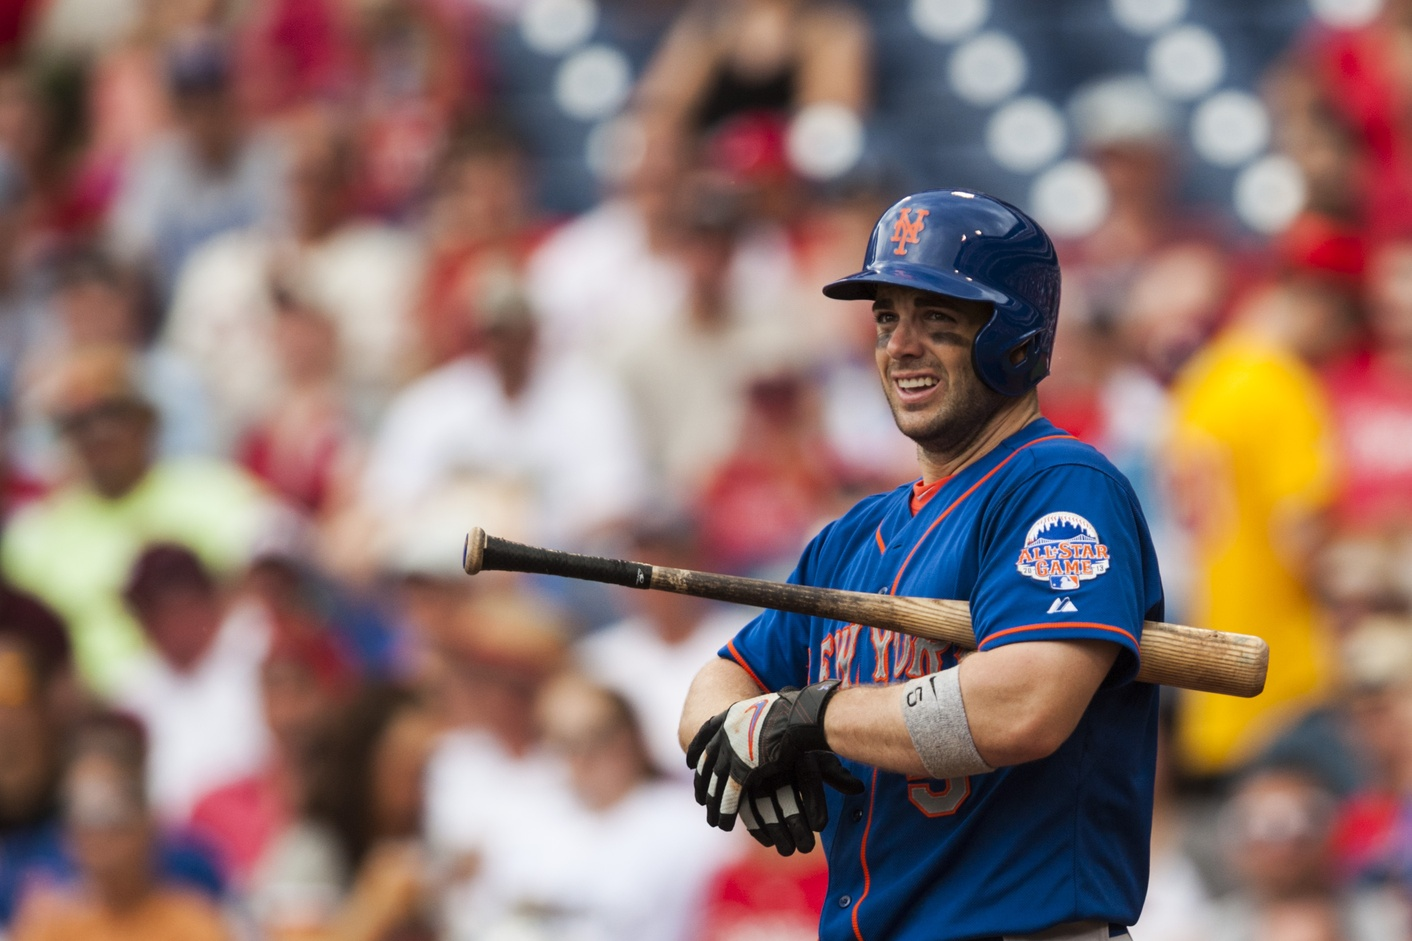 David Wright Nominated for 2013 Roberto Clemente Award